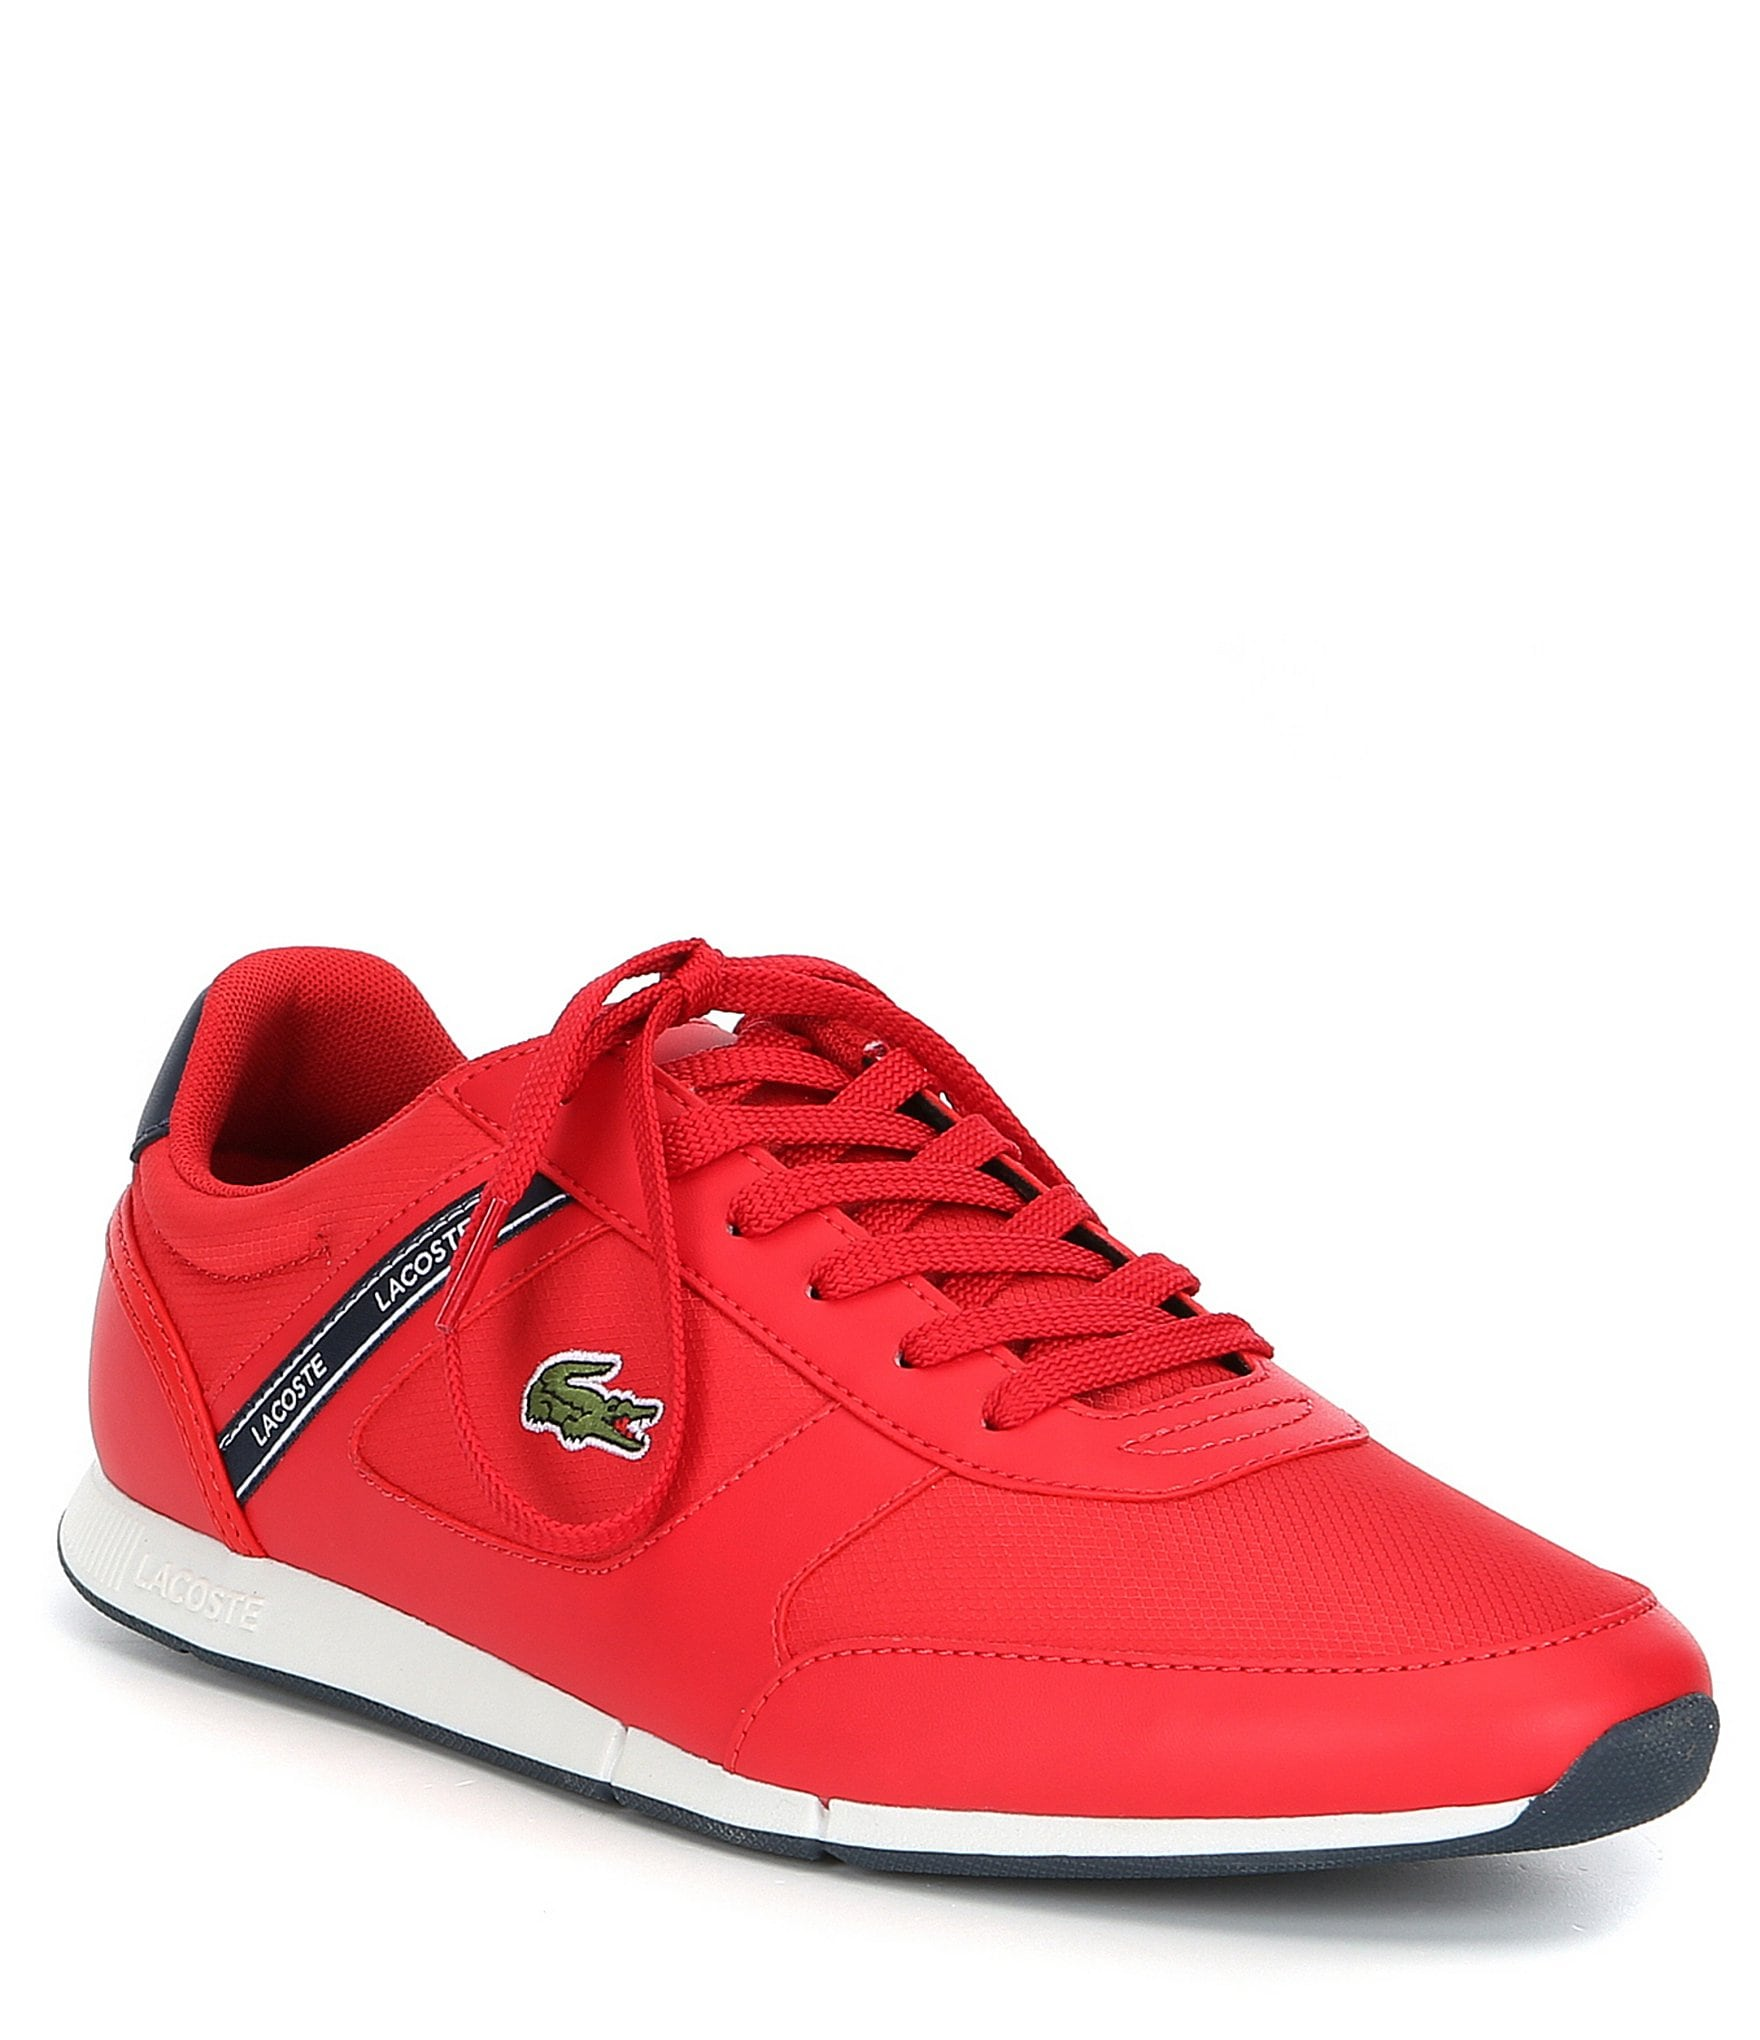 9ad875b9d Lacoste Men s Shoes